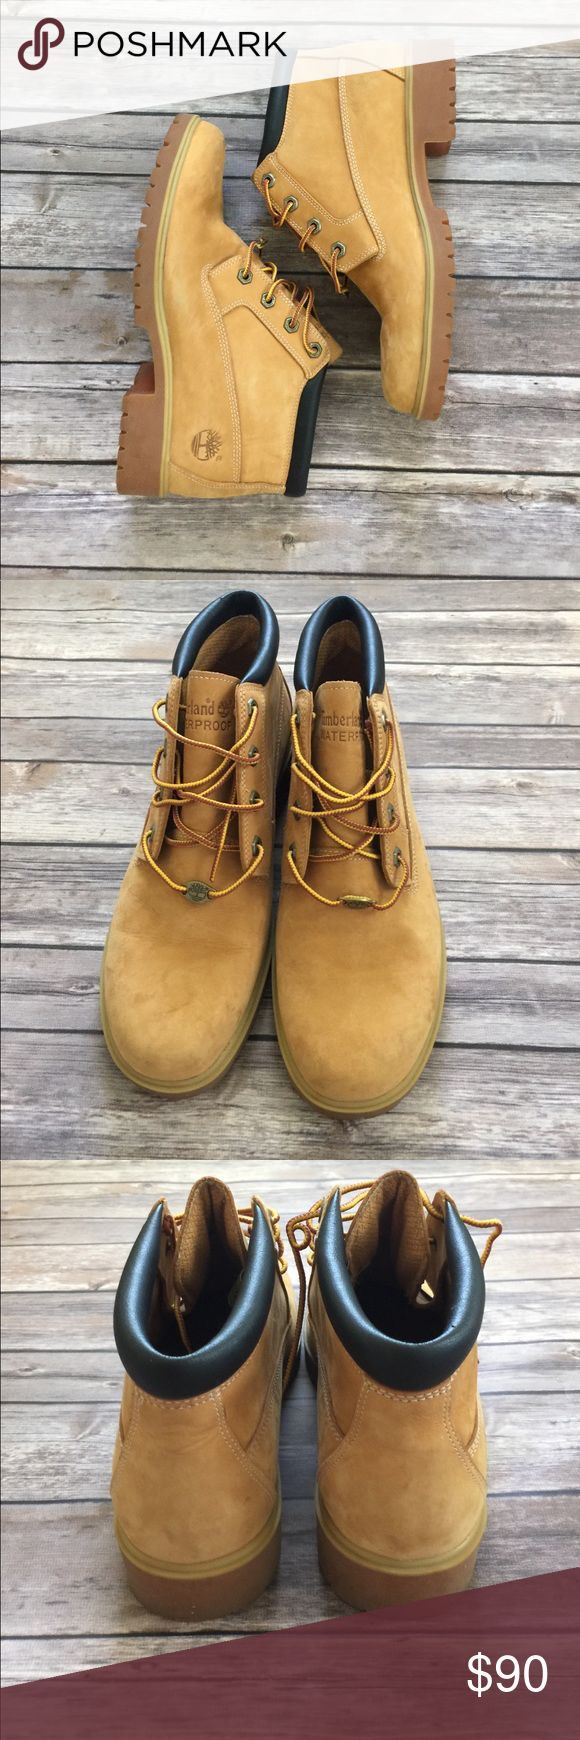 Authentic Timberland Boots EUC Authentic Timberland Nellie Boot Size 9 1/2. Bought them but never left the house wearing them. There are a few scuffs. Definitely in excellent condition! Super cute boots. Please feel free to ask any questions or send me a reasonable offer! Timberland Shoes